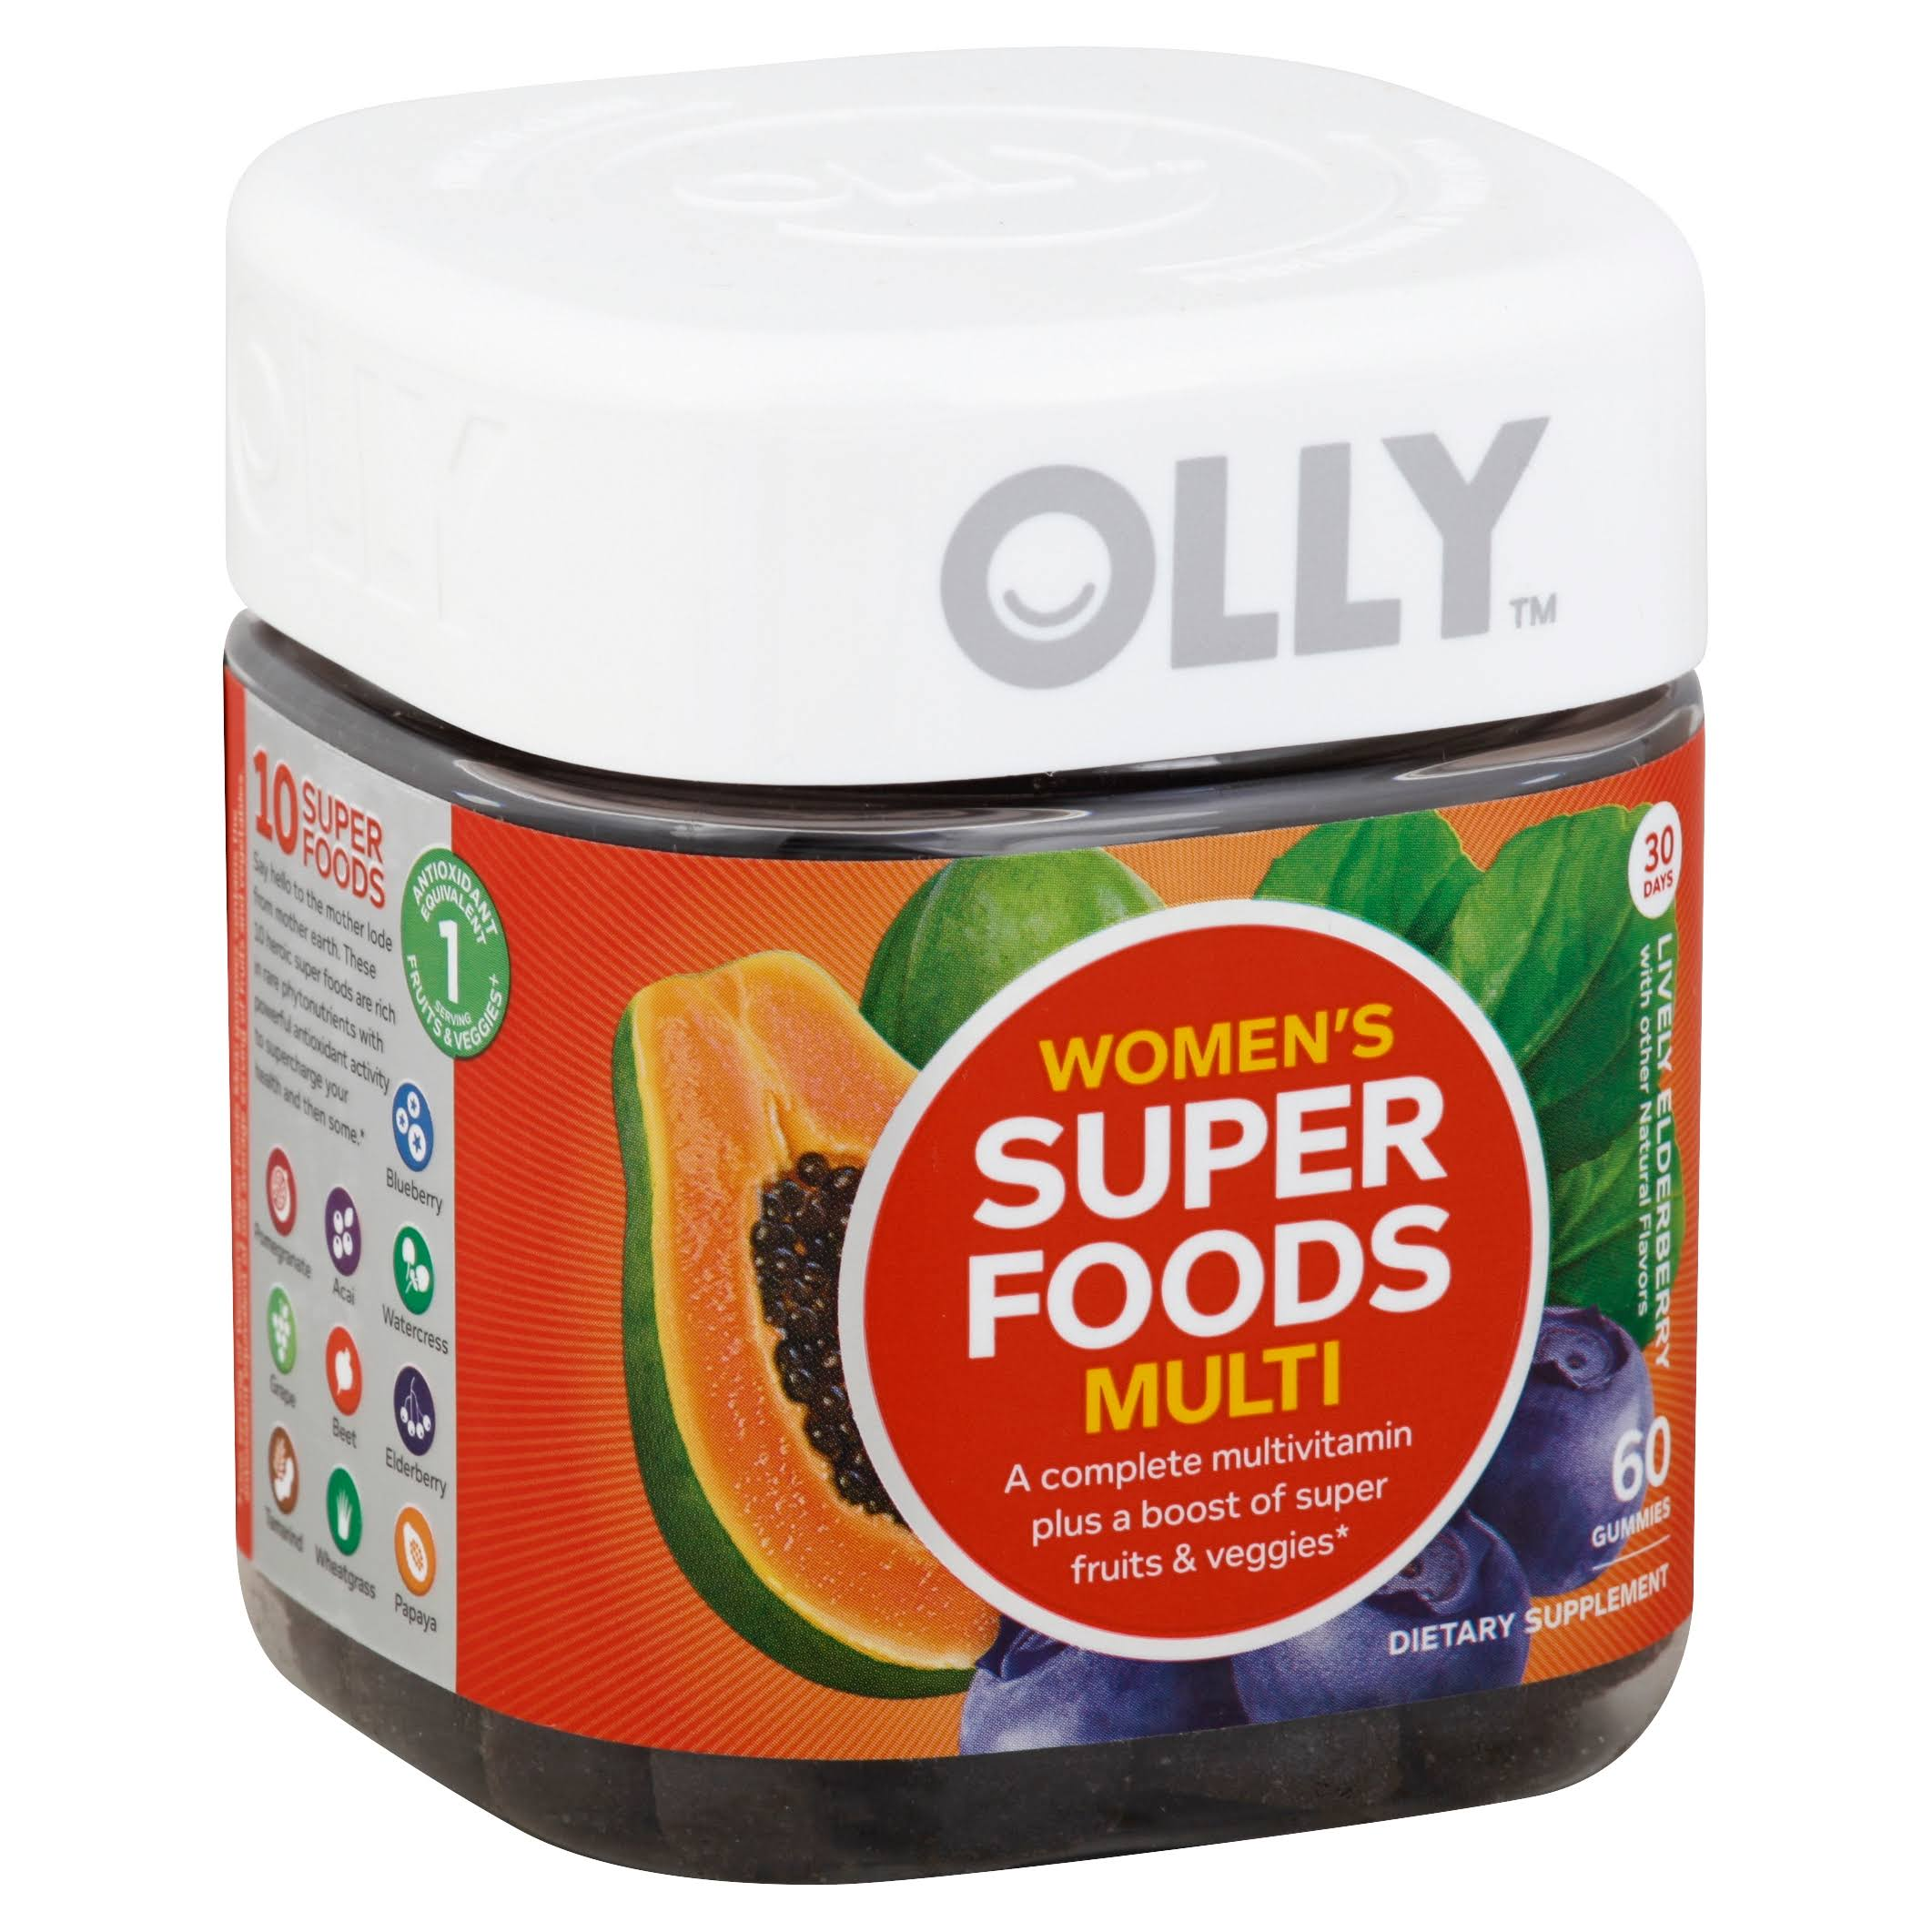 Olly Women's Super Foods Multivitamins - x60